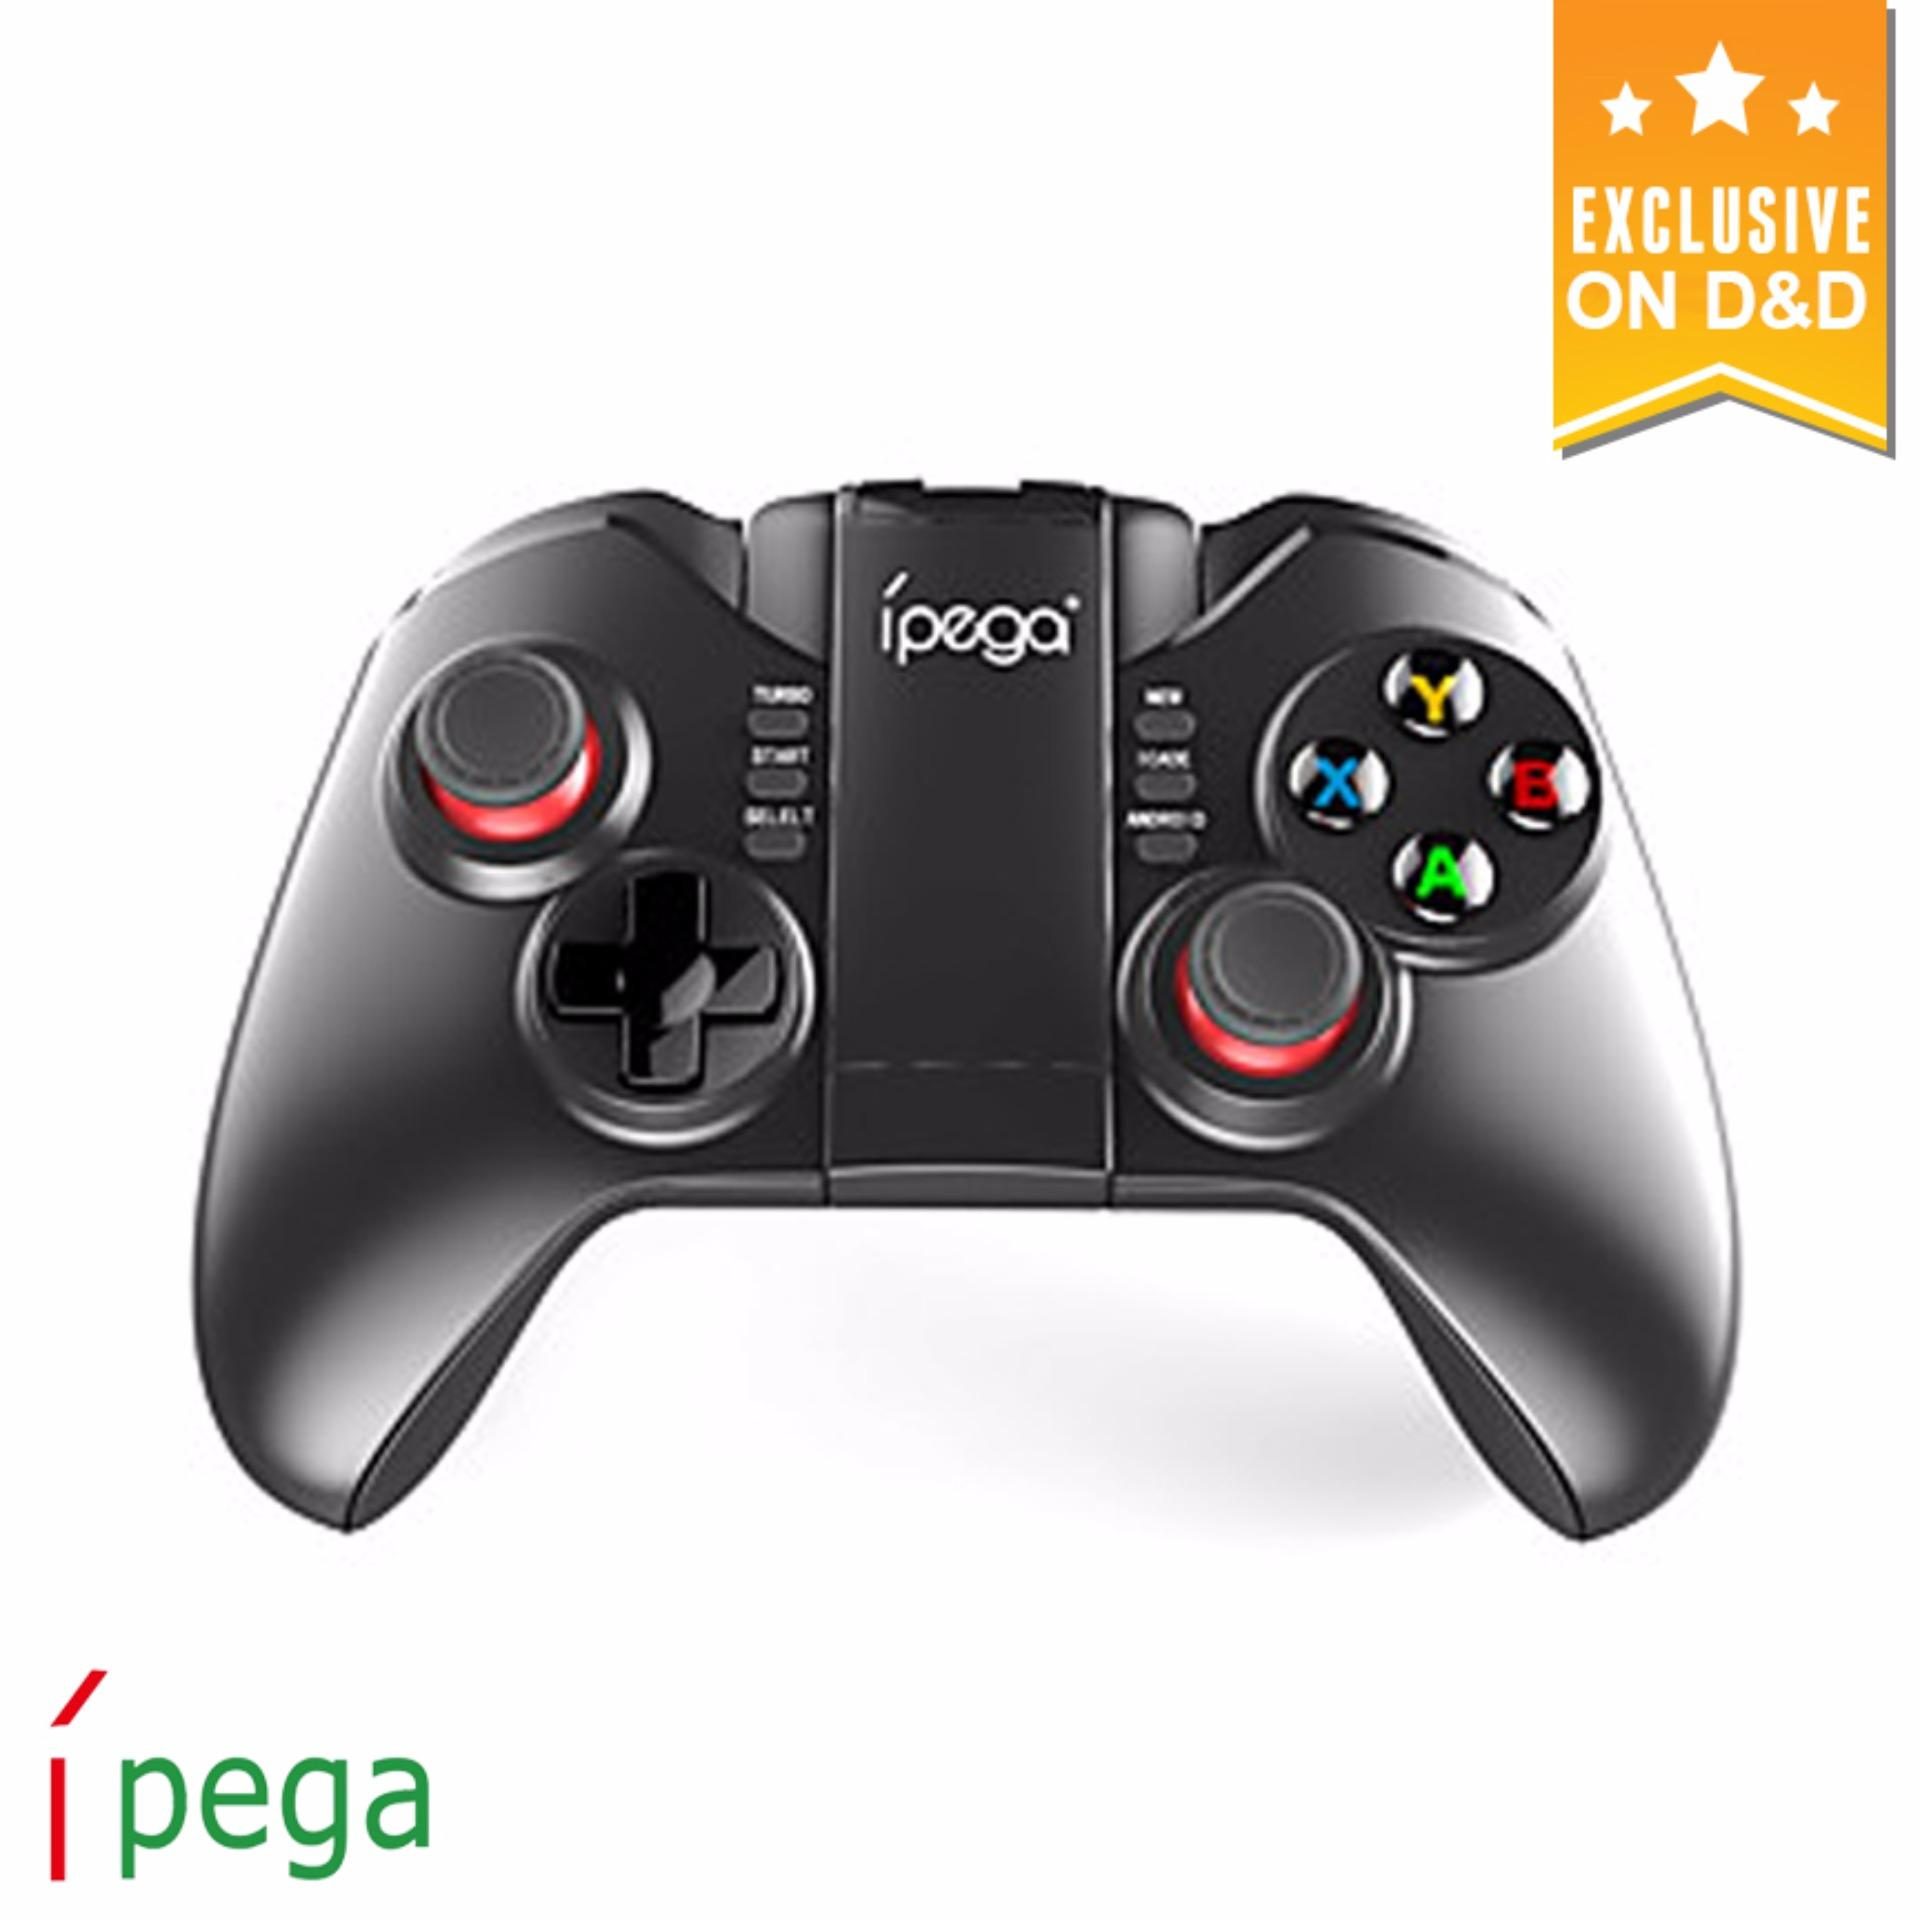 Philippines Ipega Pg 9068 Wireless Bluetooth Game Controller Joystick It Gaming For Smartphone Pad Tab Gamepad Joystickfor Ios Android Tablet Pc Computer